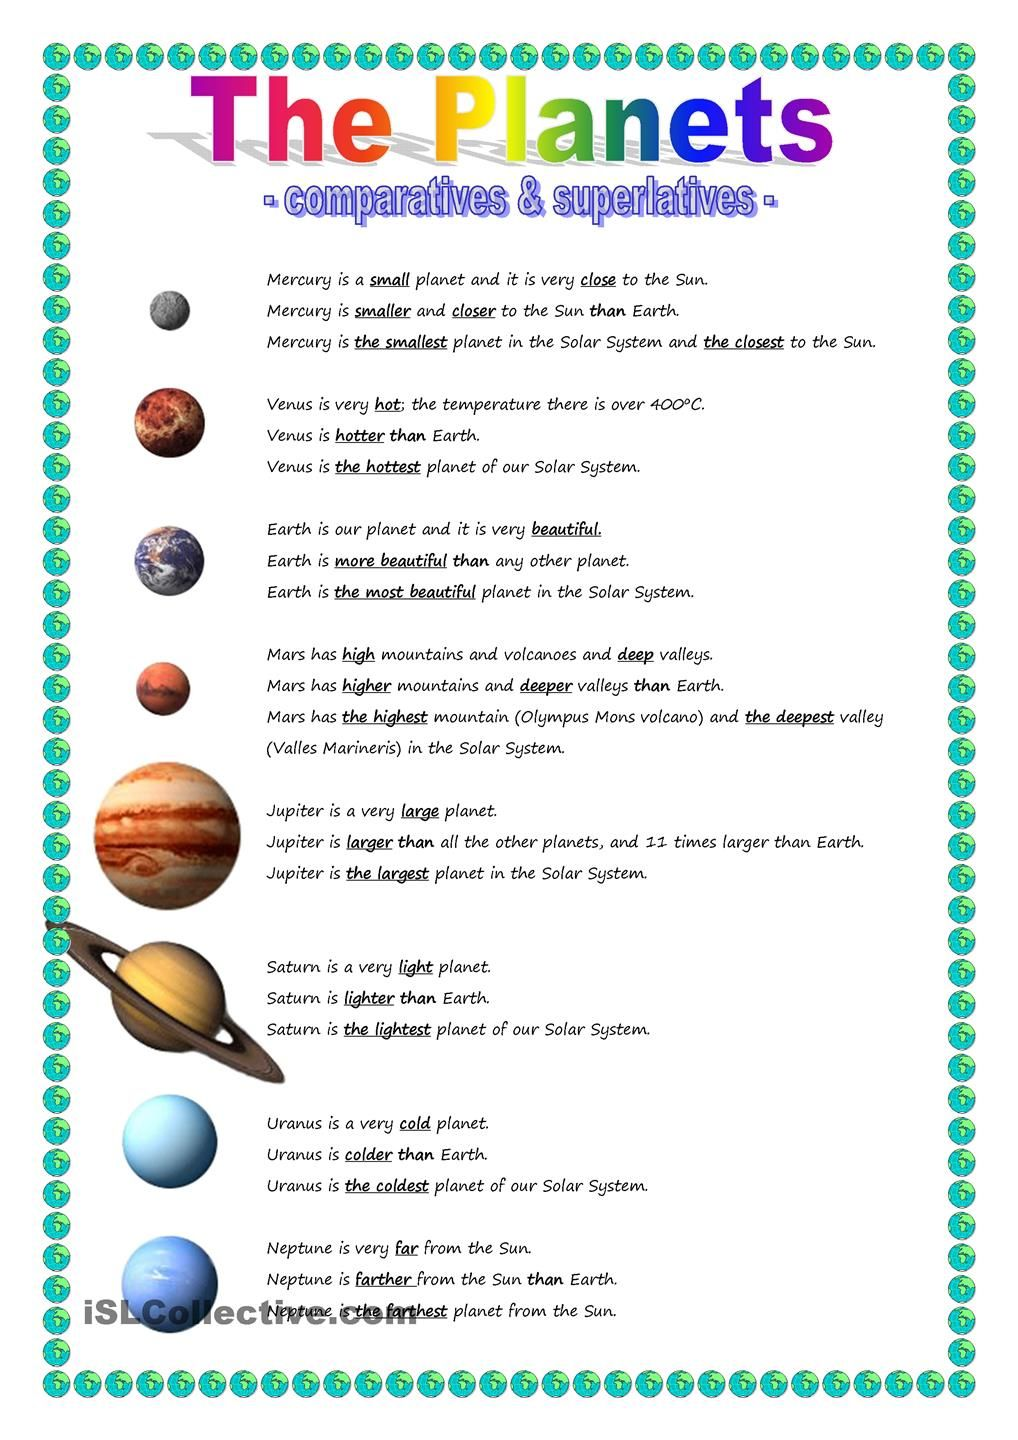 The Planets - comparative & superlative | Education - The Solar ...